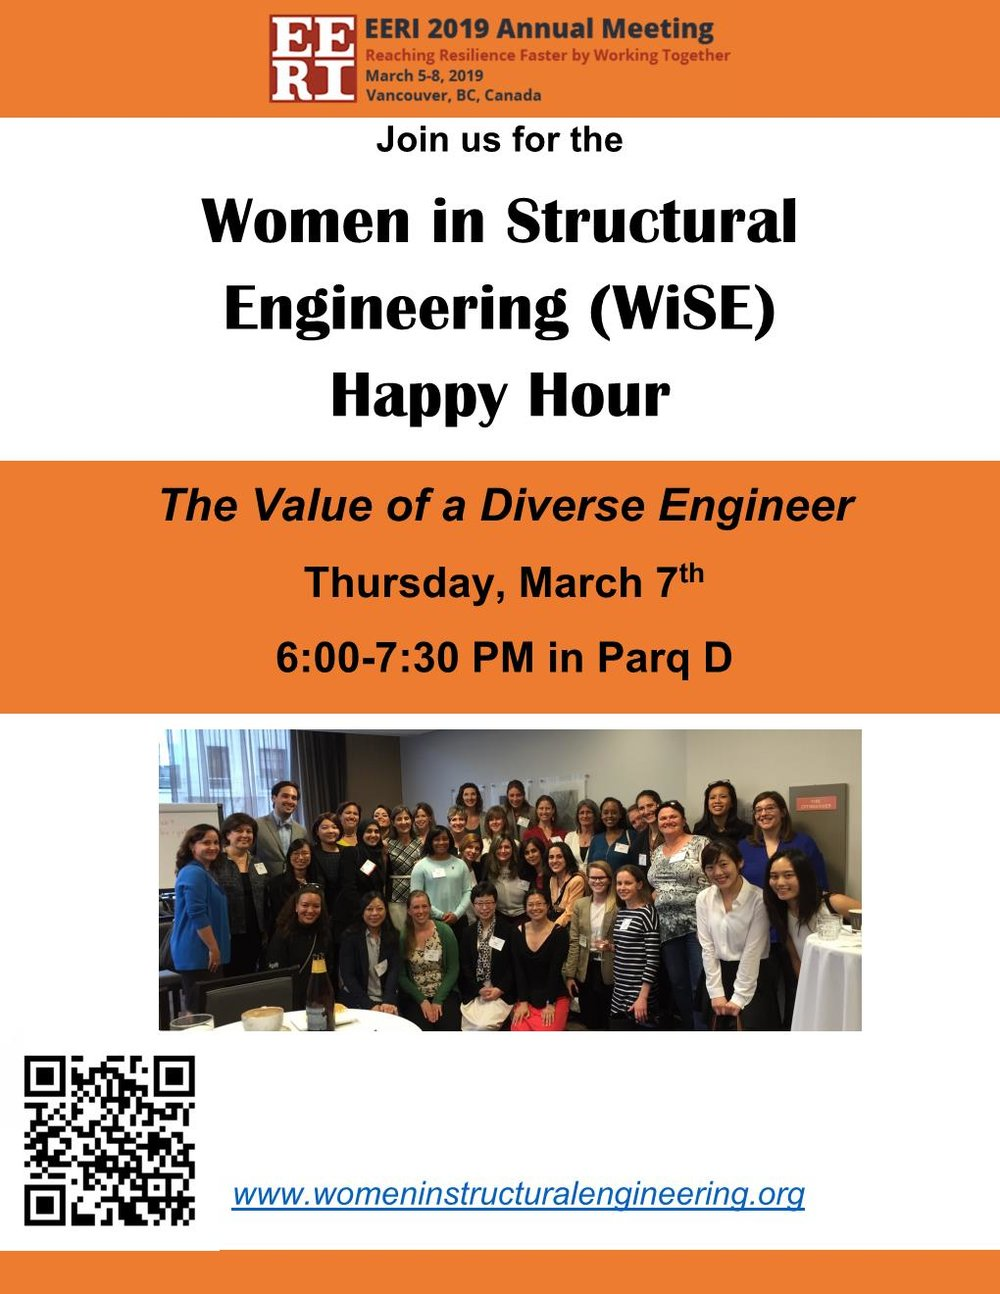 WiSE at 2019 EERI Annual Meeting! - Join WiSE as we embrace our neighbors to the north at the 2019 EERI Annual Meeting in Vancouver, BC. We will be discussing the value of a diverse engineering in room Parq D from 6-7:30 pm.See you there! All are welcome.